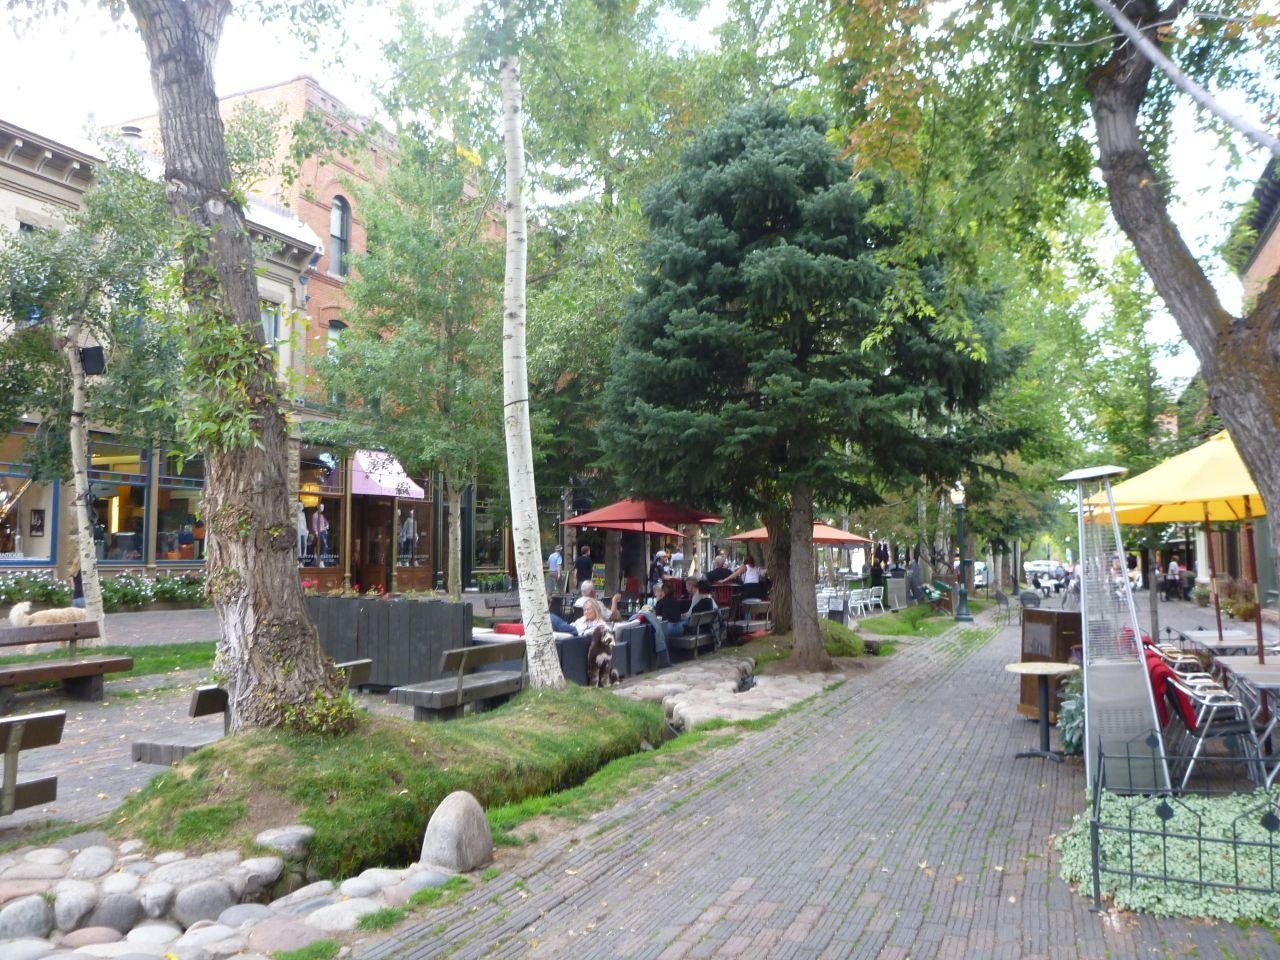 A Central Park Surrounded By Shops